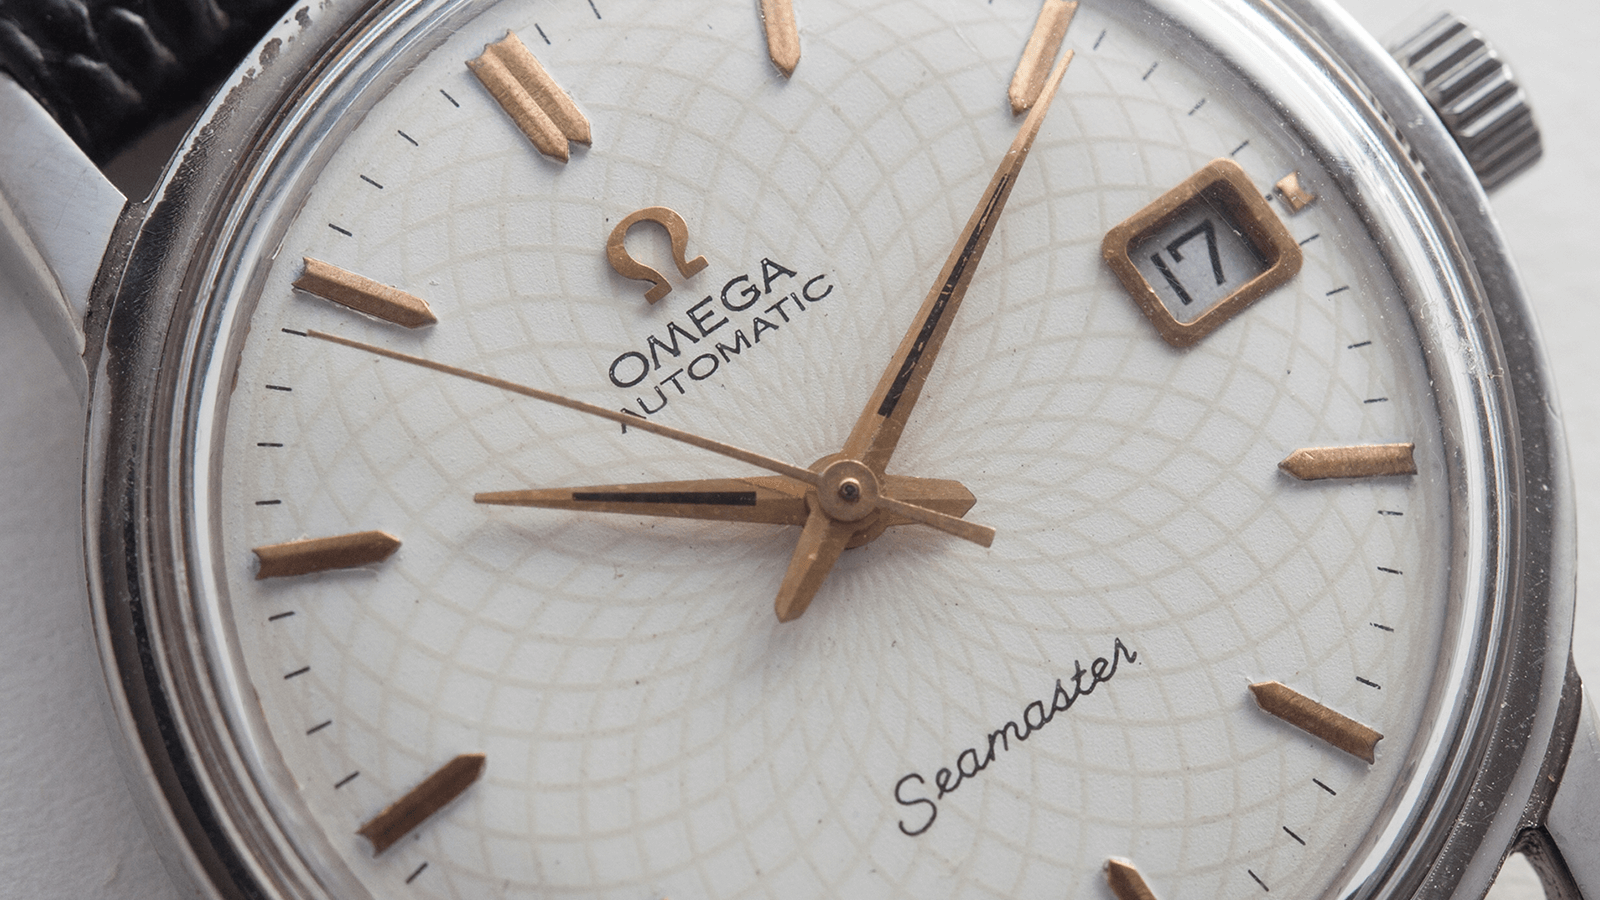 In The Metal: I Have NEVER Seen This Amazing Omega Dial Before